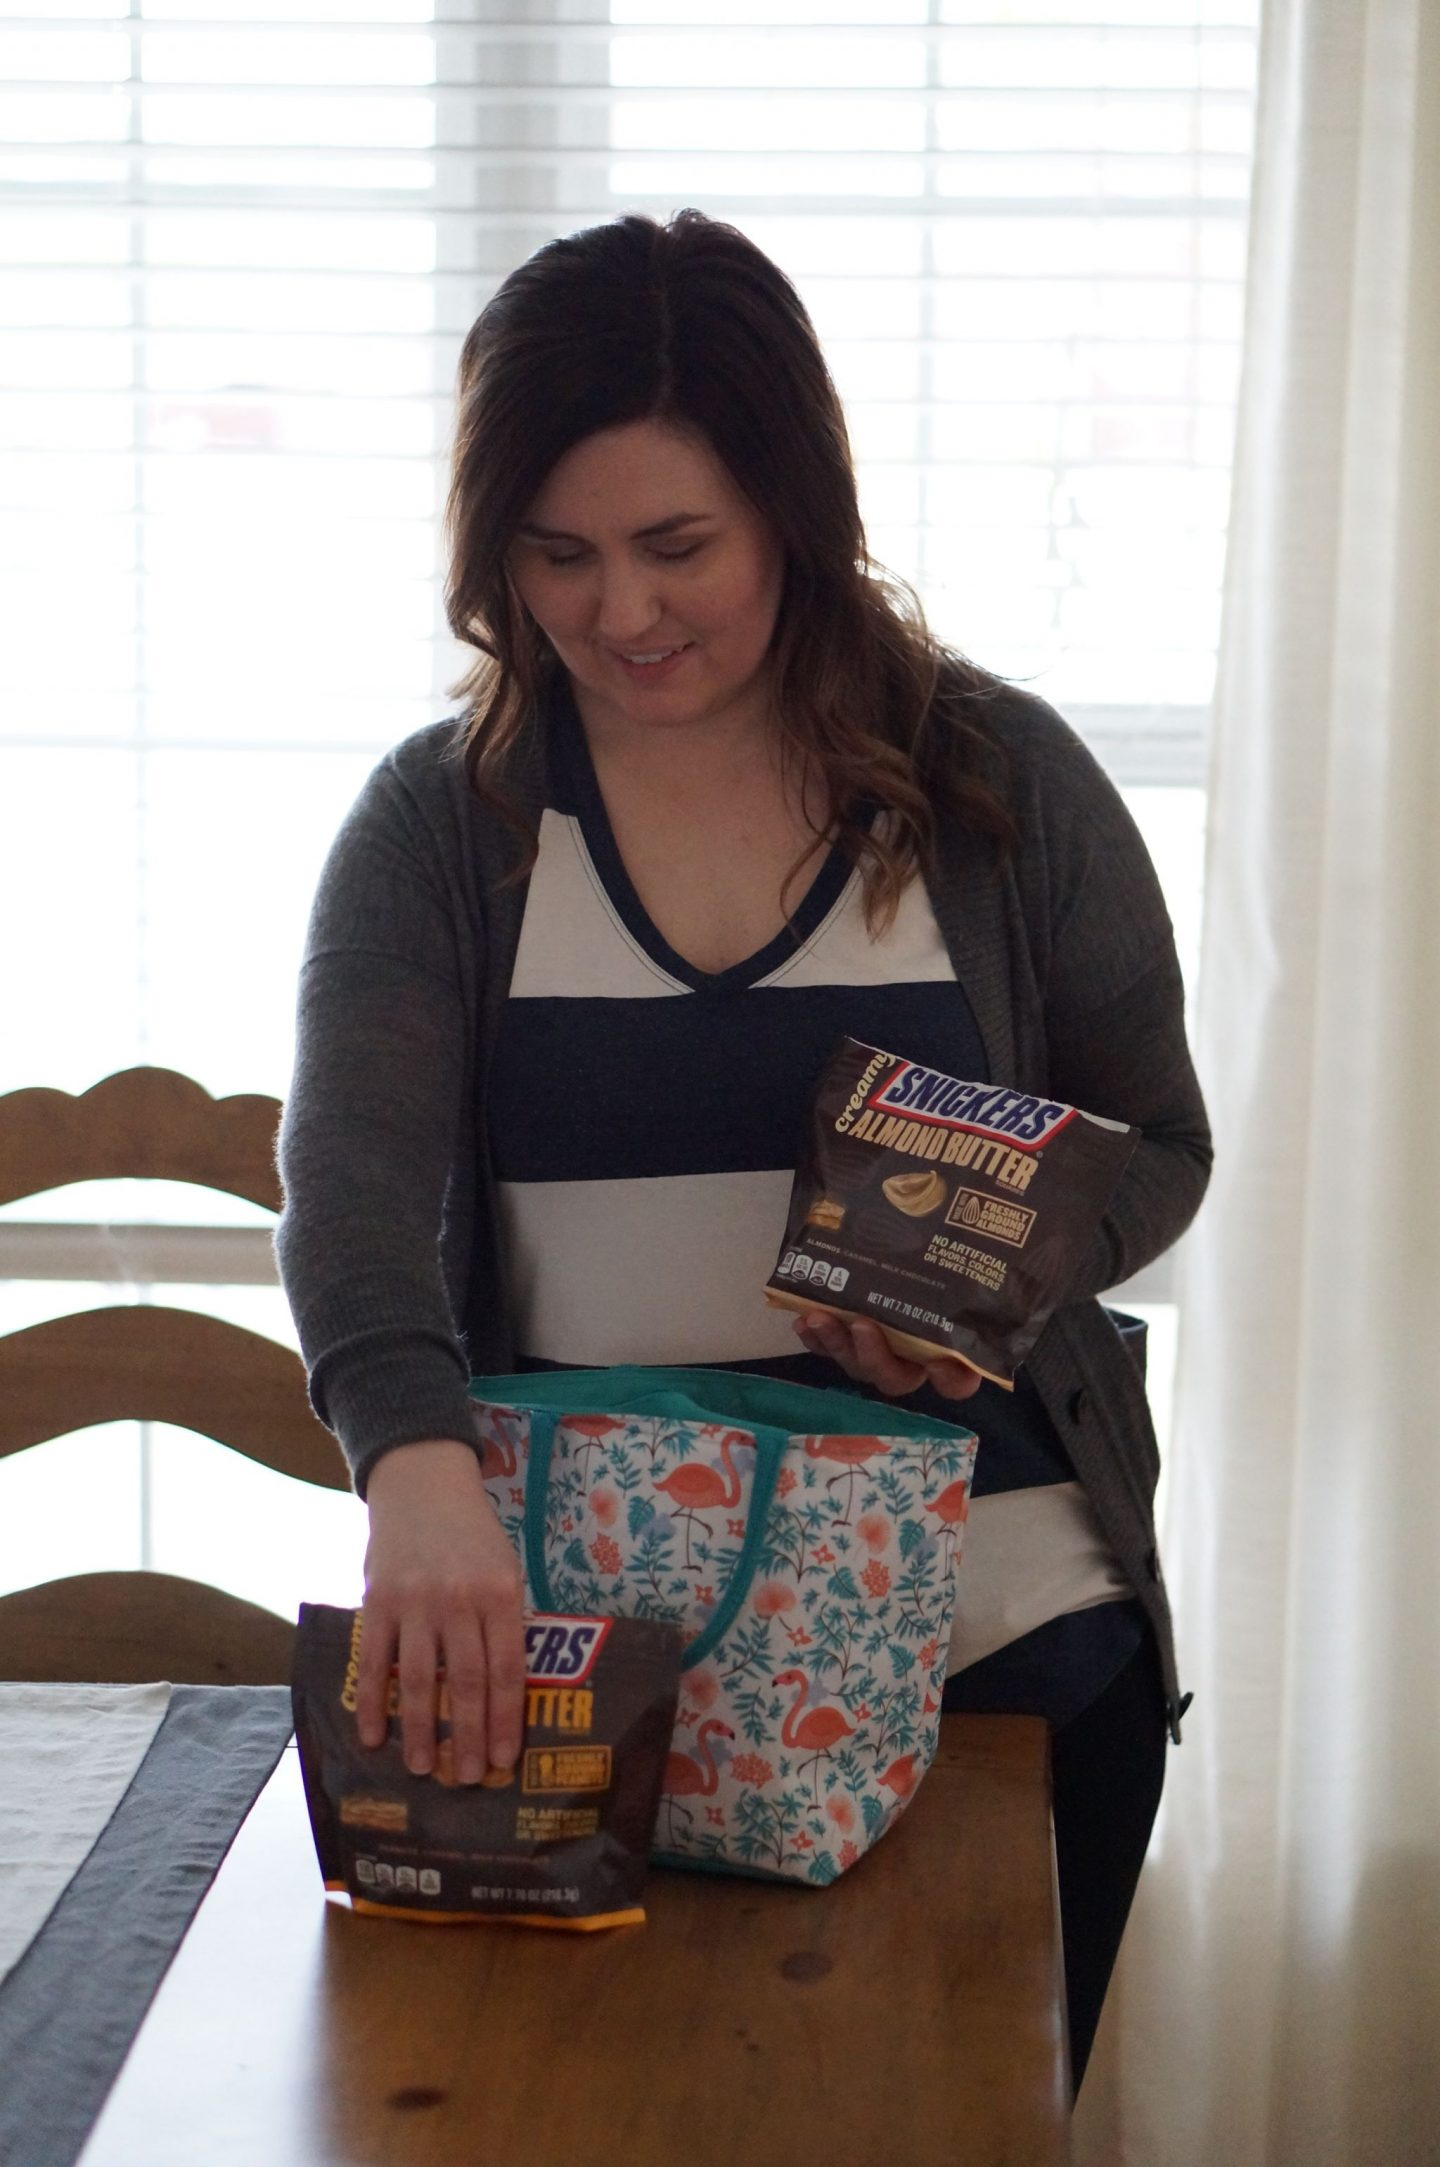 North Carolina blogger Rebecca Lately shares how she keeps her hangry moments at bay with the new SNICKERS Fun Size flavors.